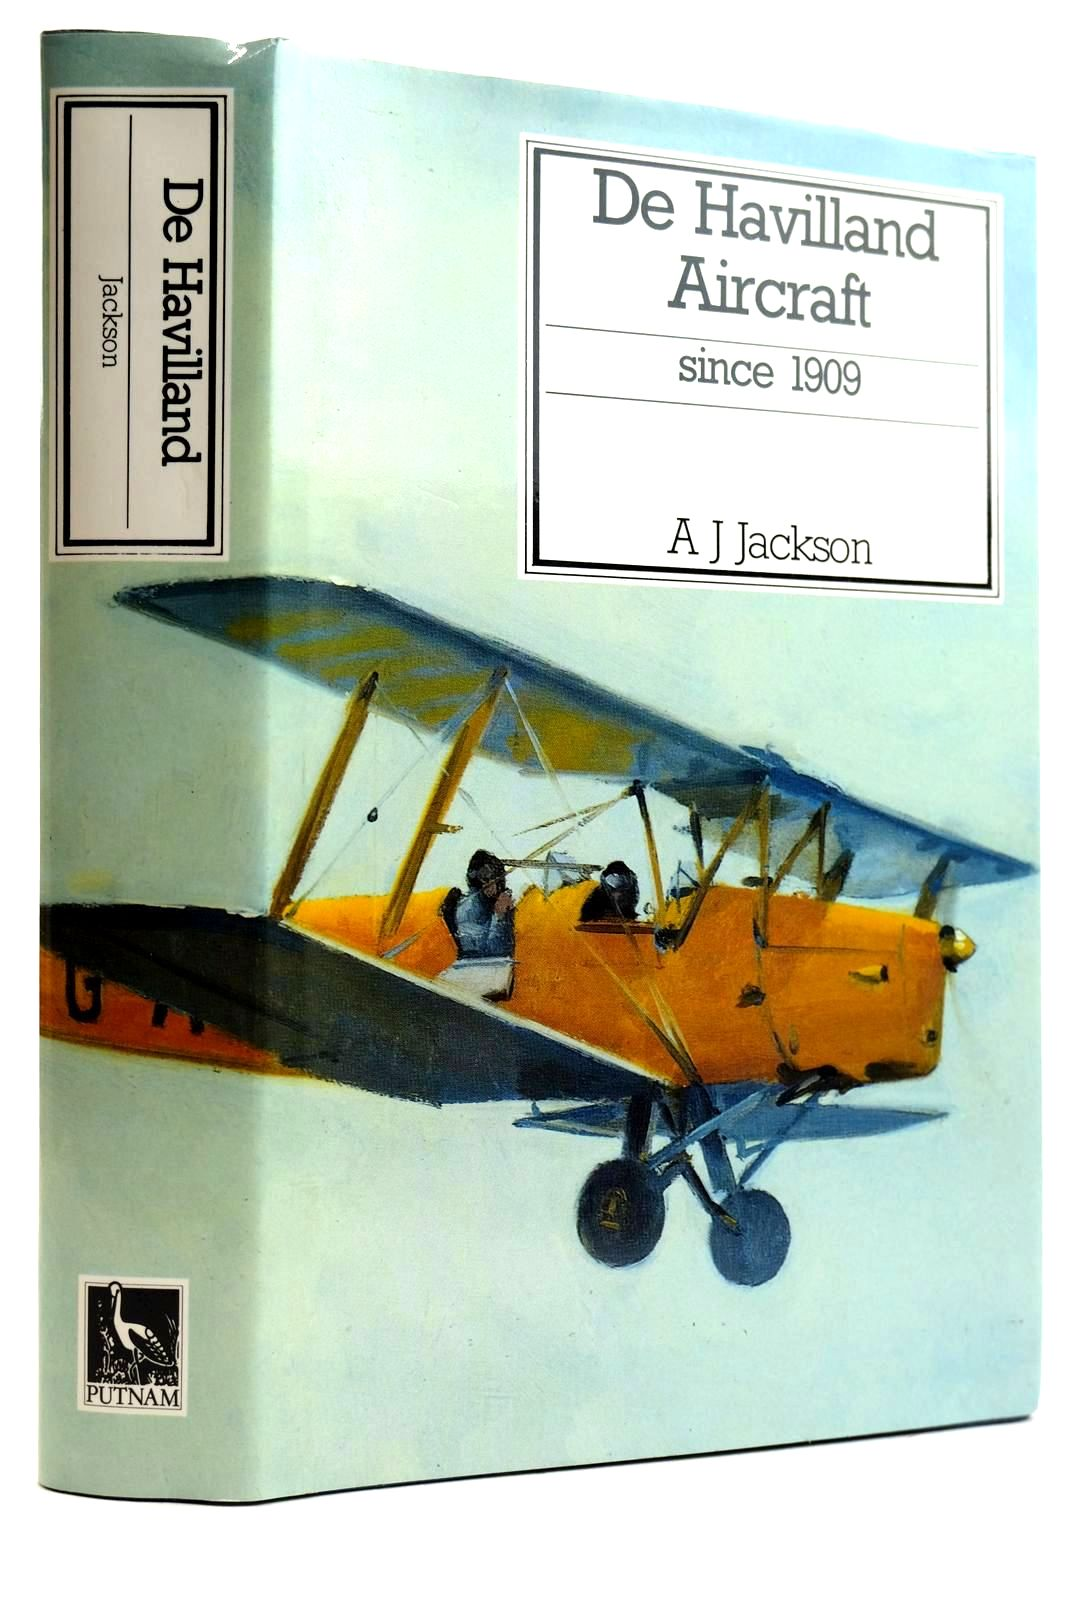 Photo of DE HAVILLAND AIRCRAFT SINCE 1909 written by Jackson, A.J. published by Putnam (STOCK CODE: 2132077)  for sale by Stella & Rose's Books